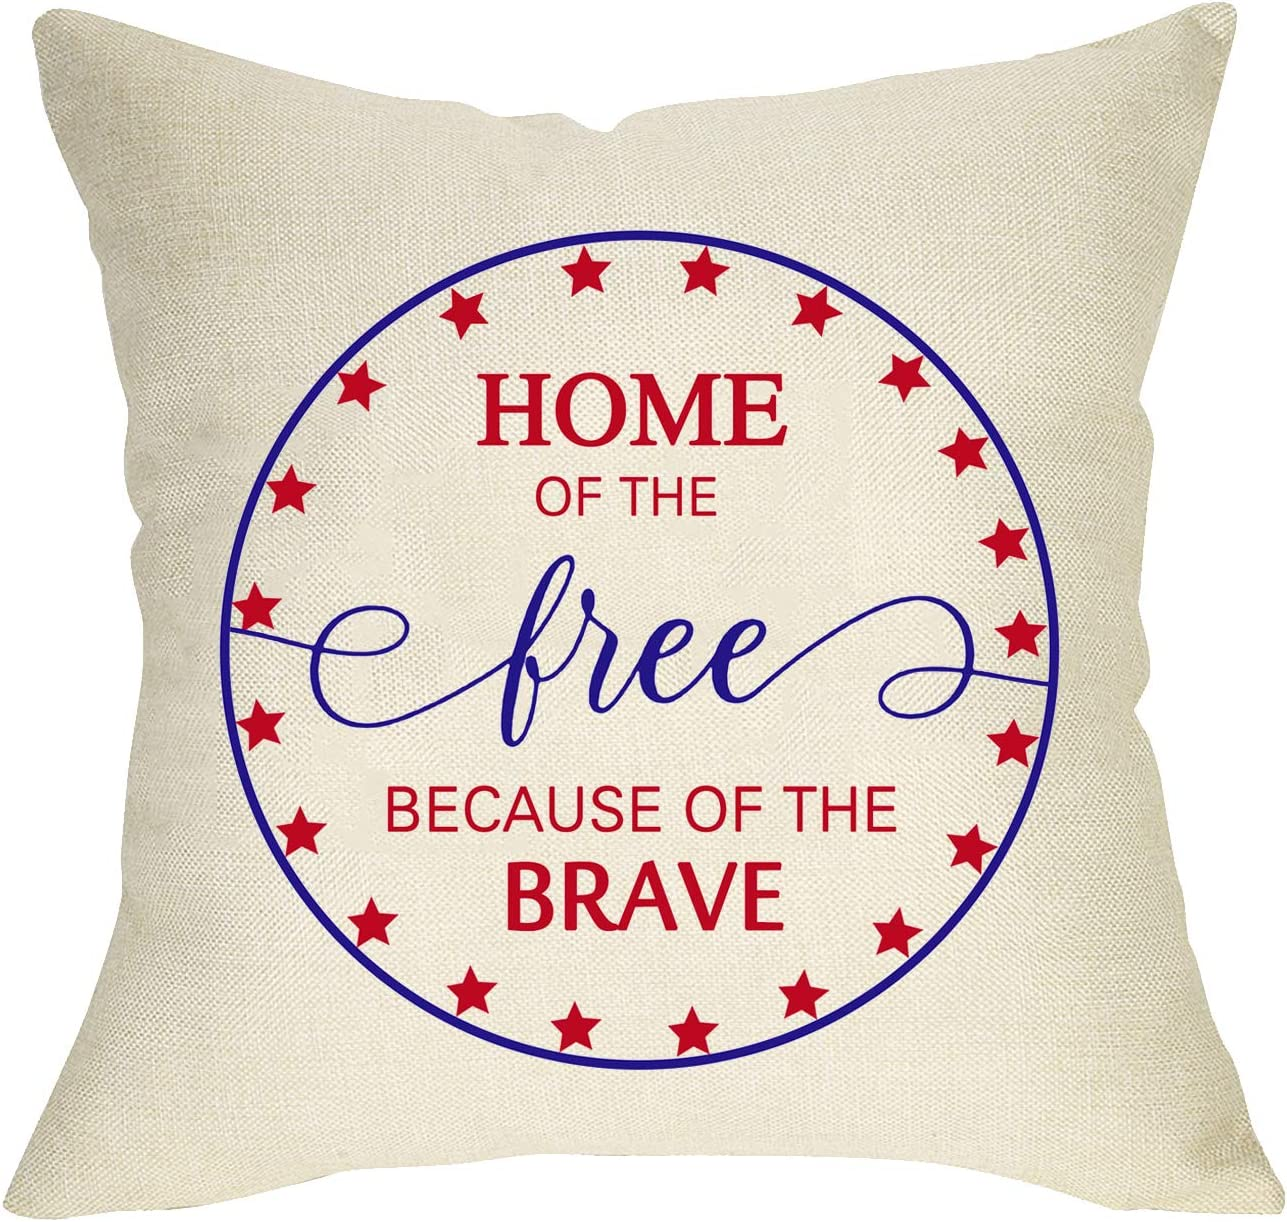 Fbcoo Home of the Free Because of the Brave Home Decorative Throw Pillow Cover, America Patriotic Cushion Case Star 4th of July Independence Day Sign, Holiday Home Decorations Pillowcase Decor 18 x 18